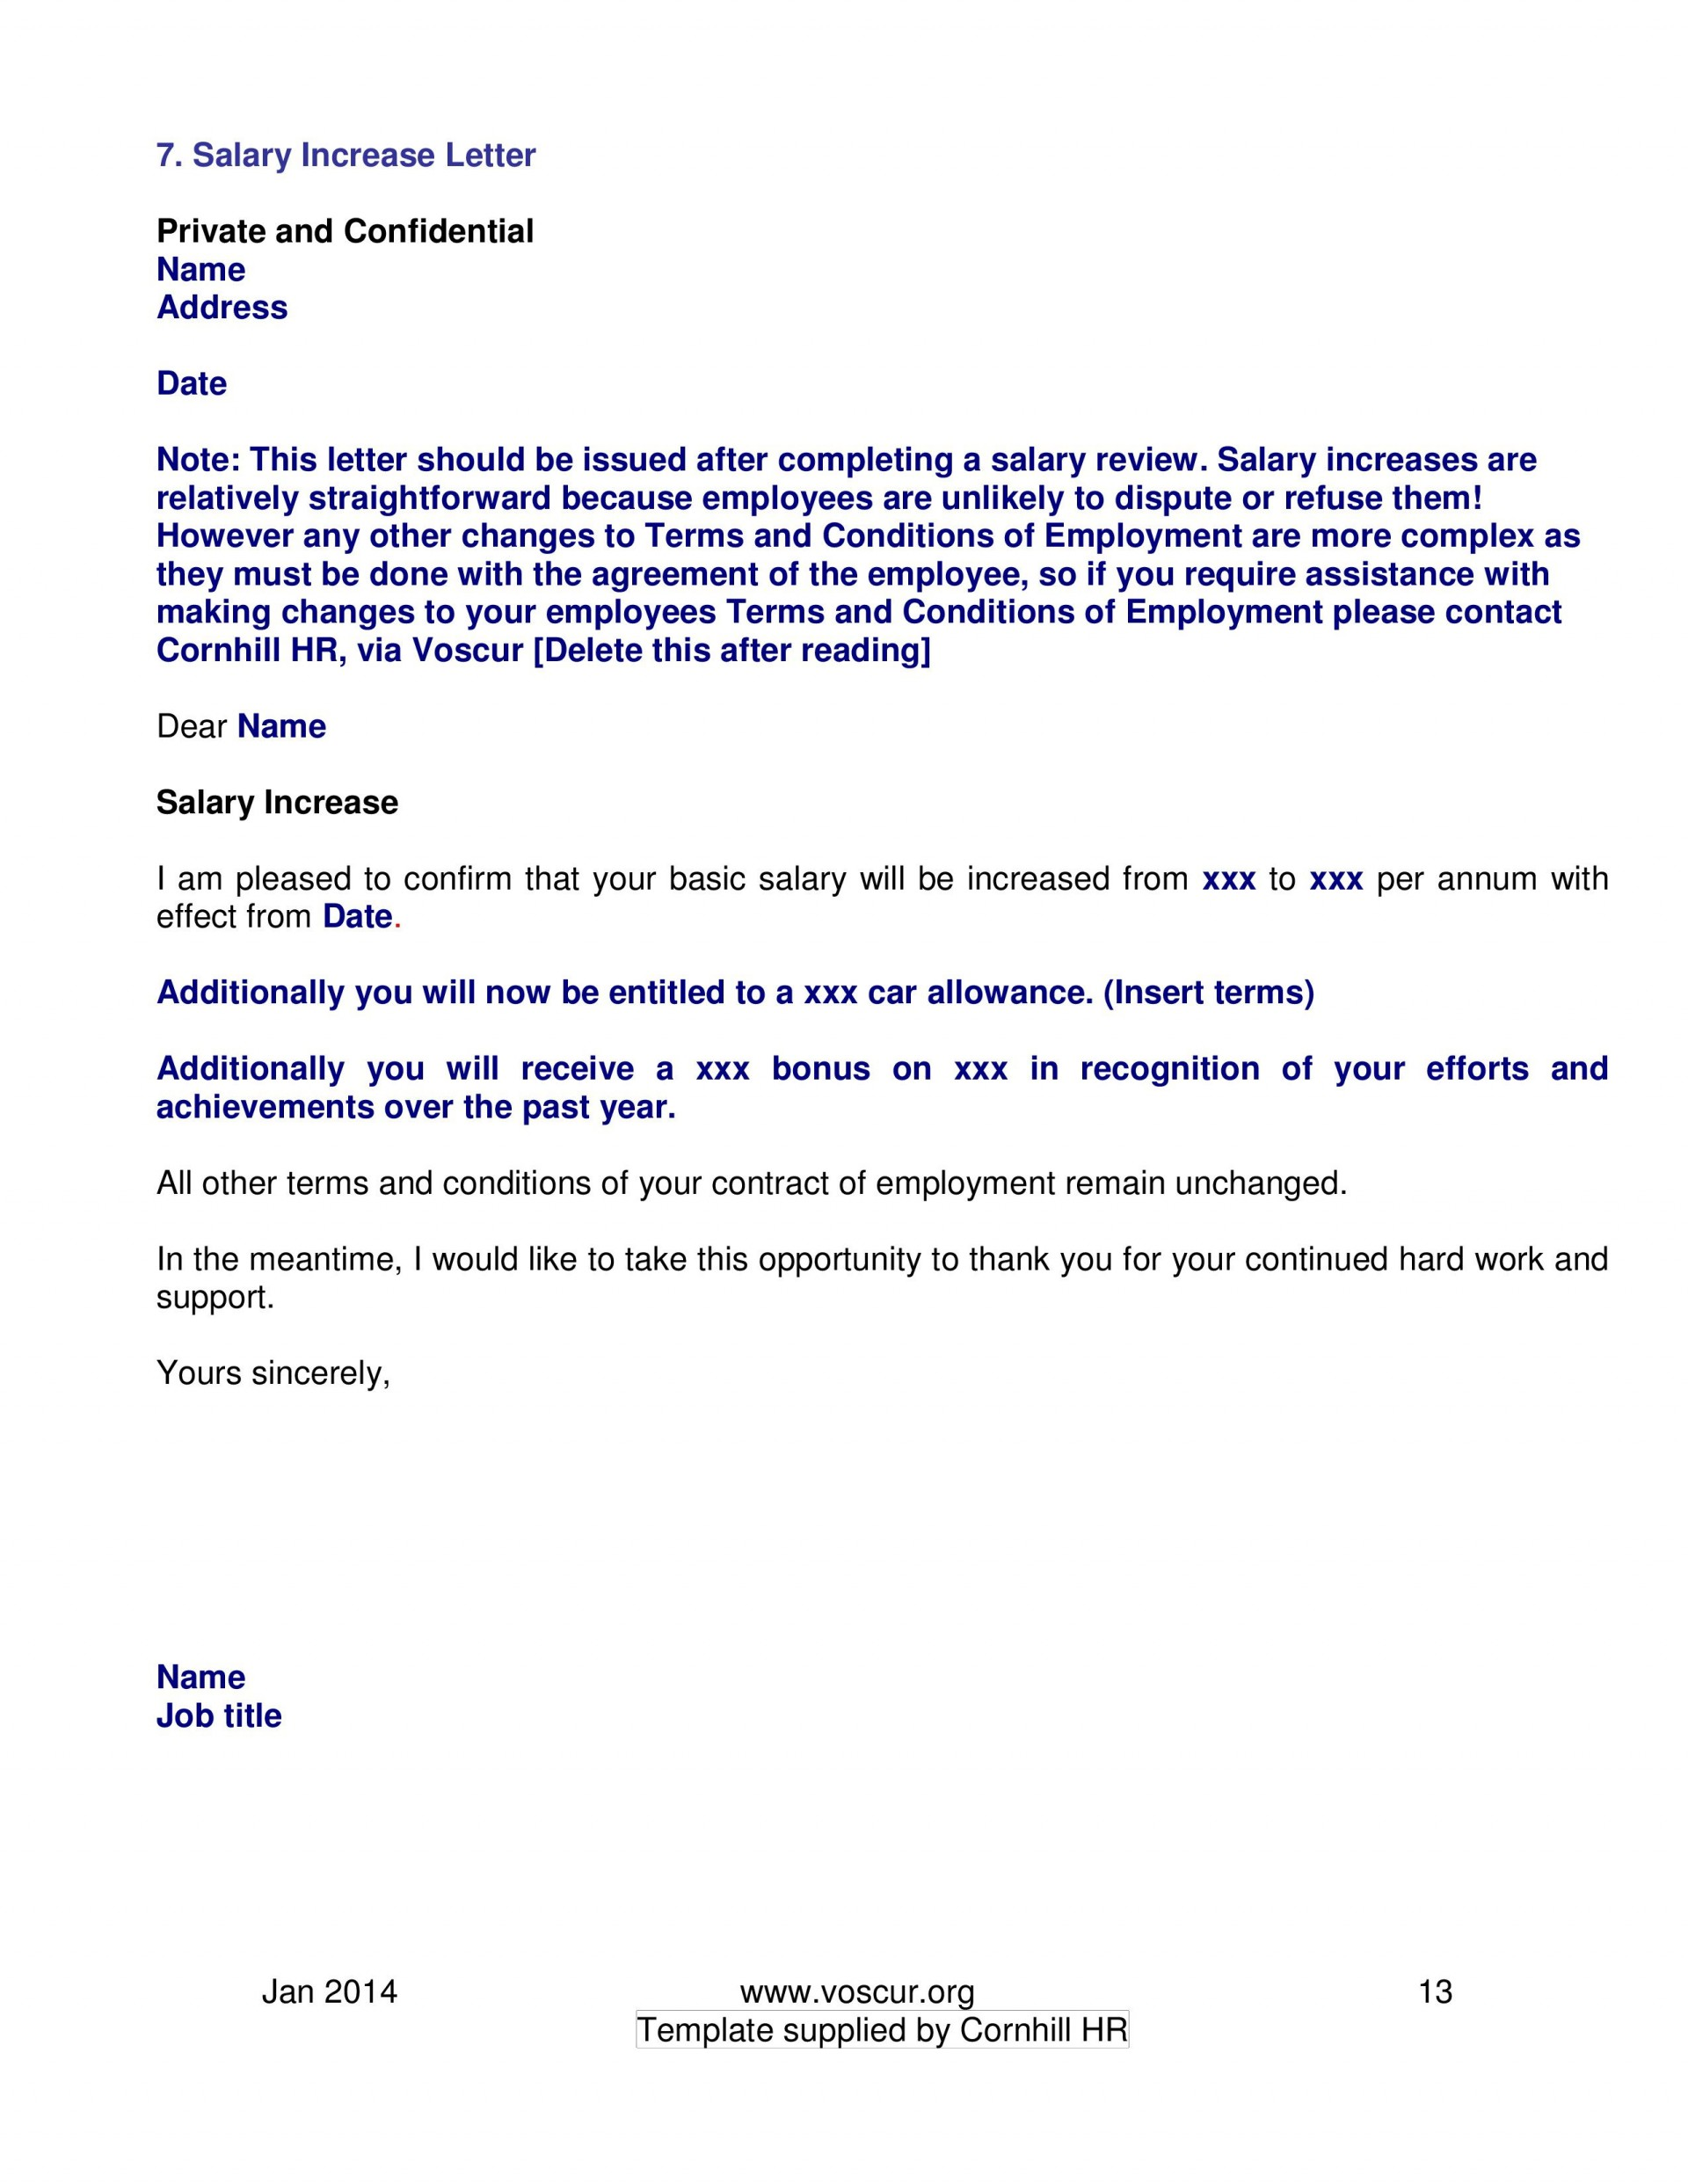 002 Excellent Salary Increase Letter Template High Resolution  From Employer To Employee Australia No For1920